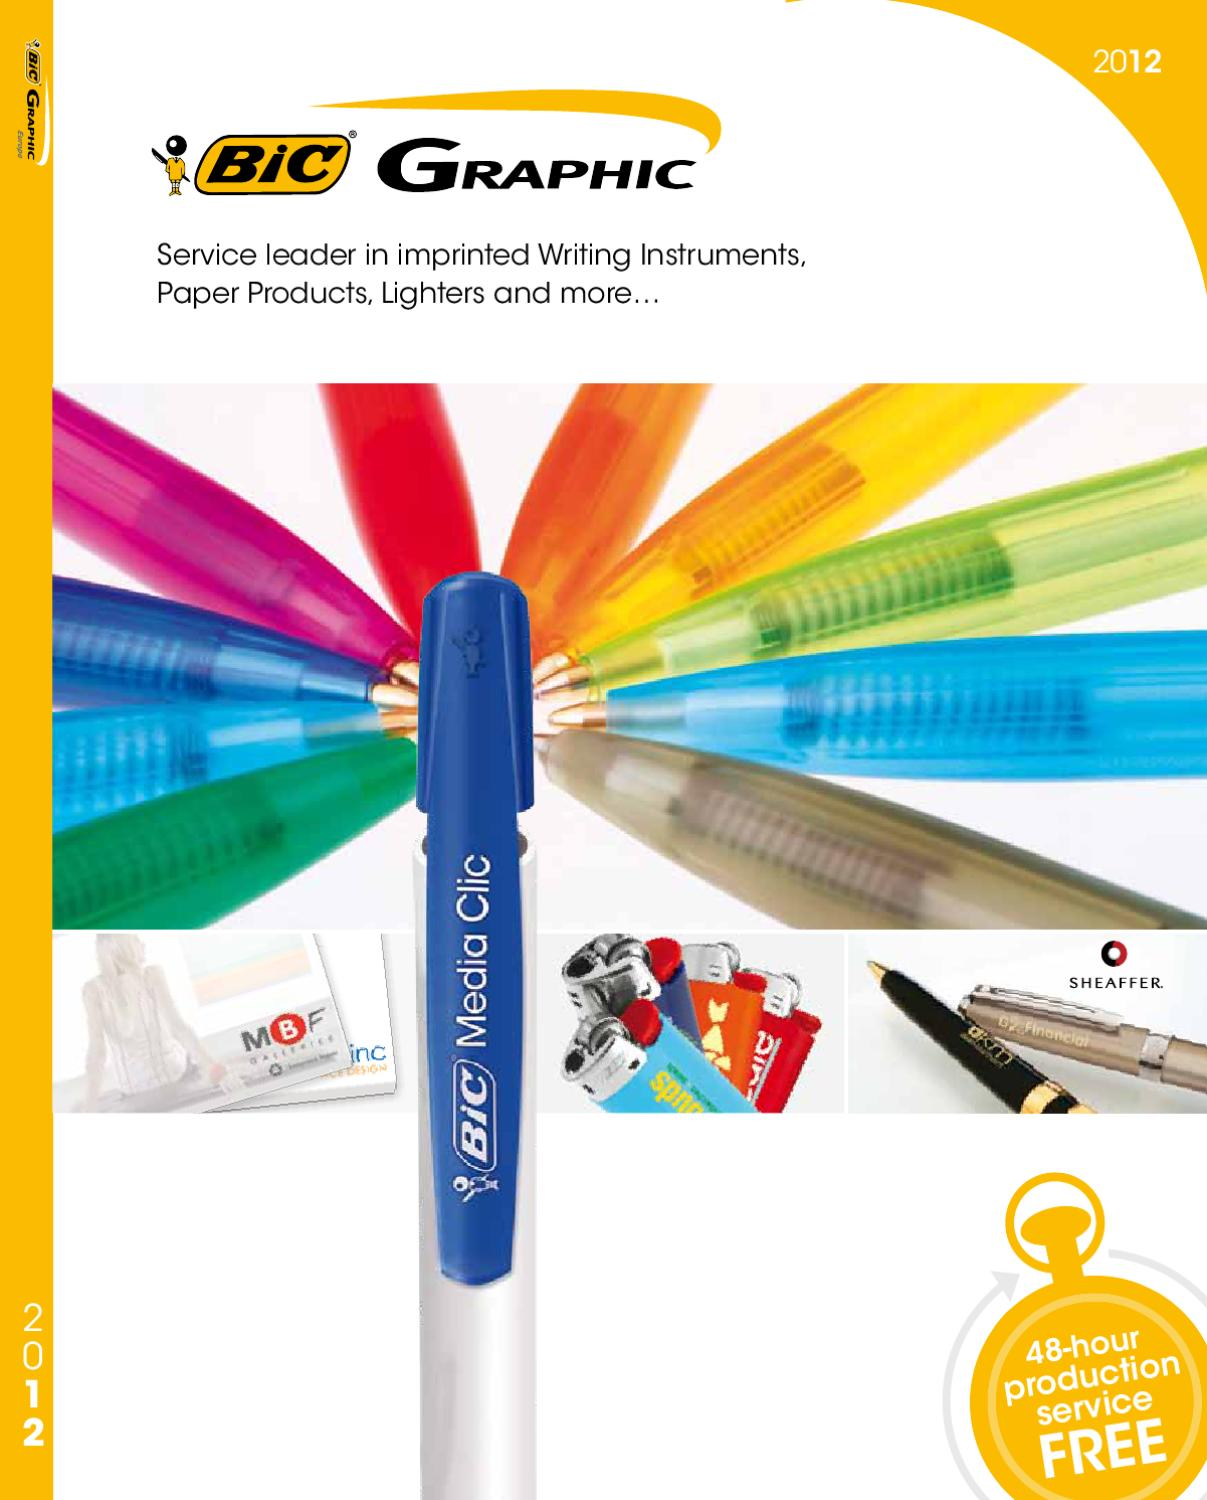 Catalogo Bic Graphic 2012 By Patcheurope Com S R L Issuu